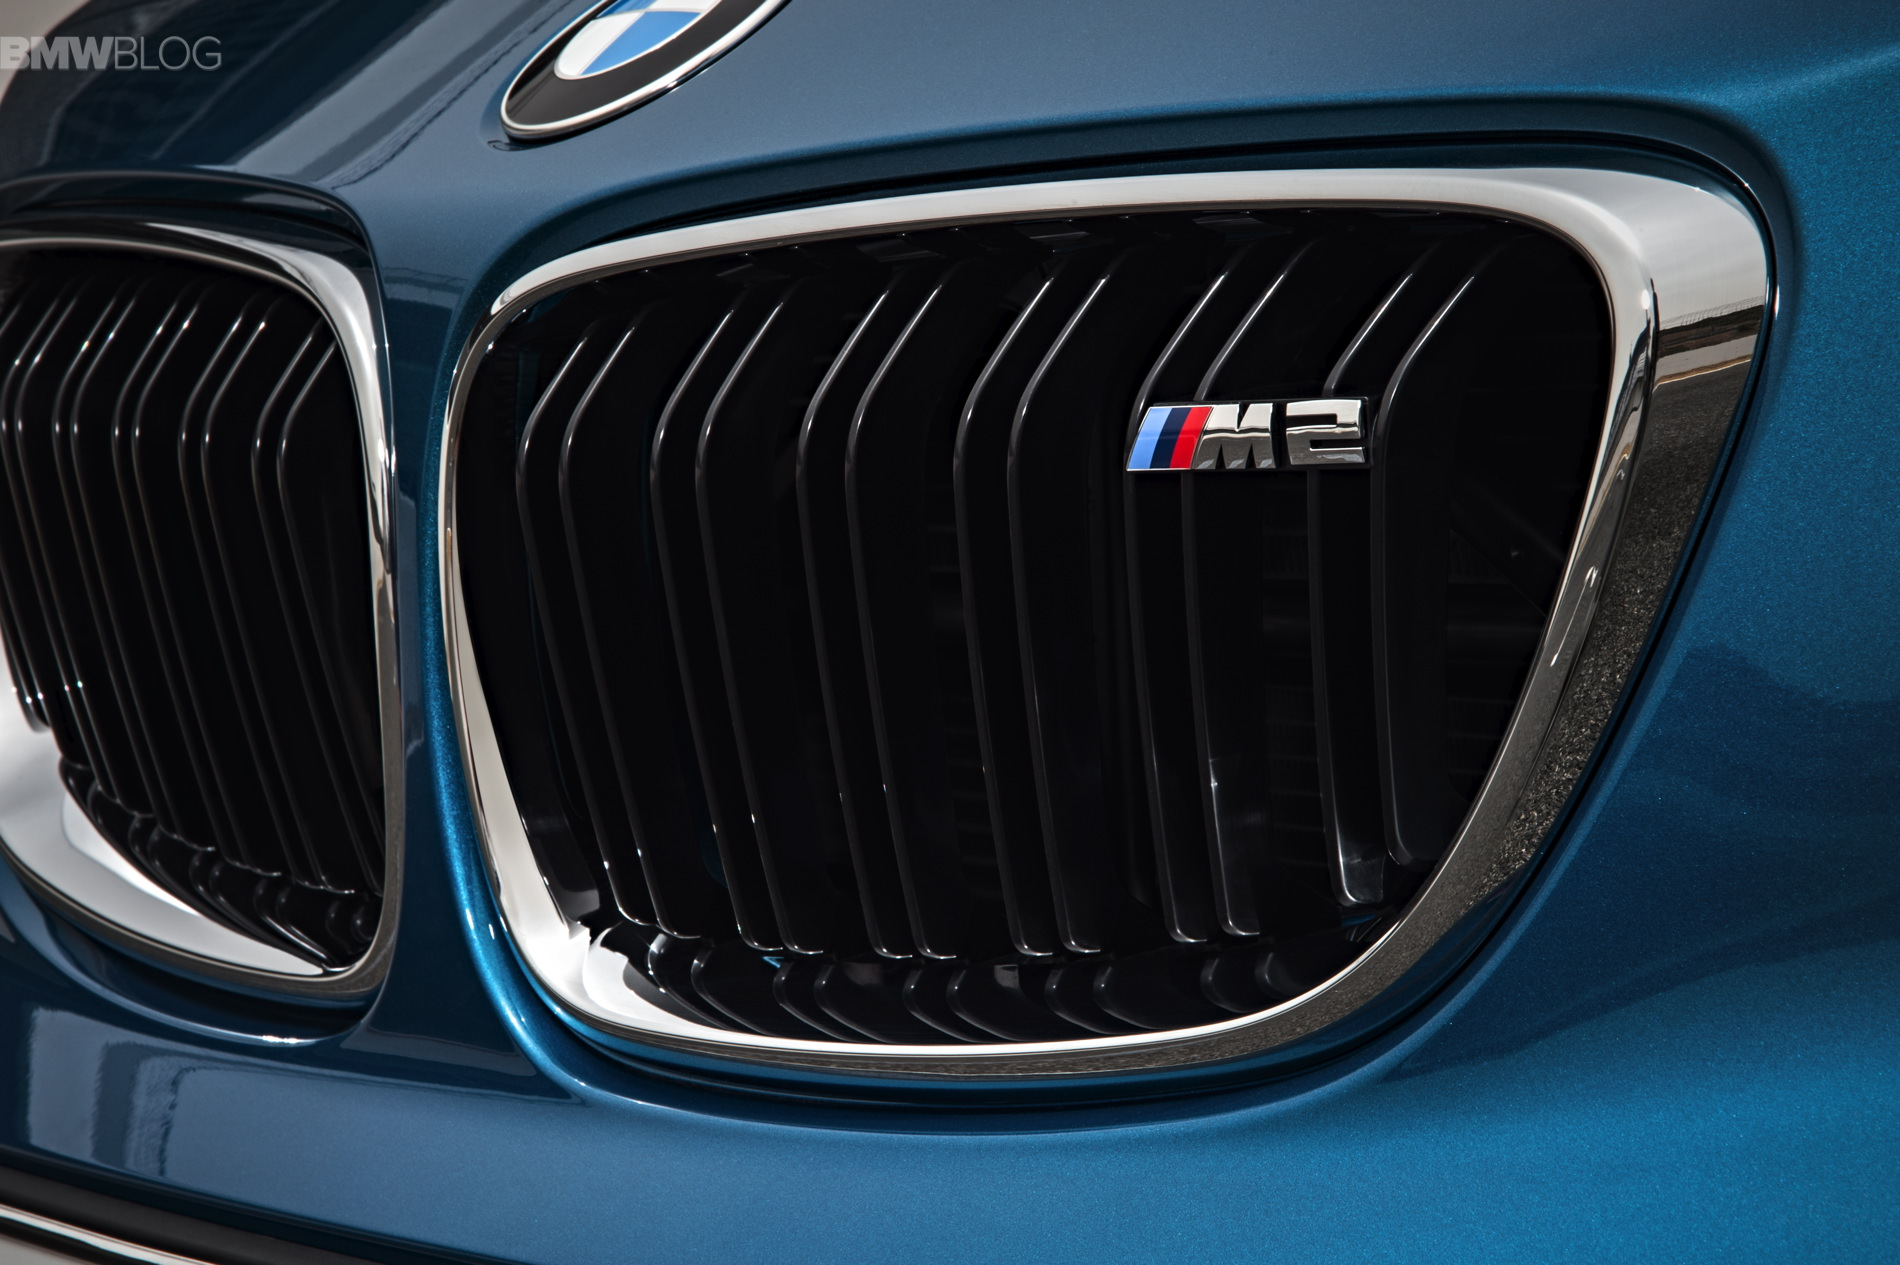 BMW M2 owners review—To the Dark Side?